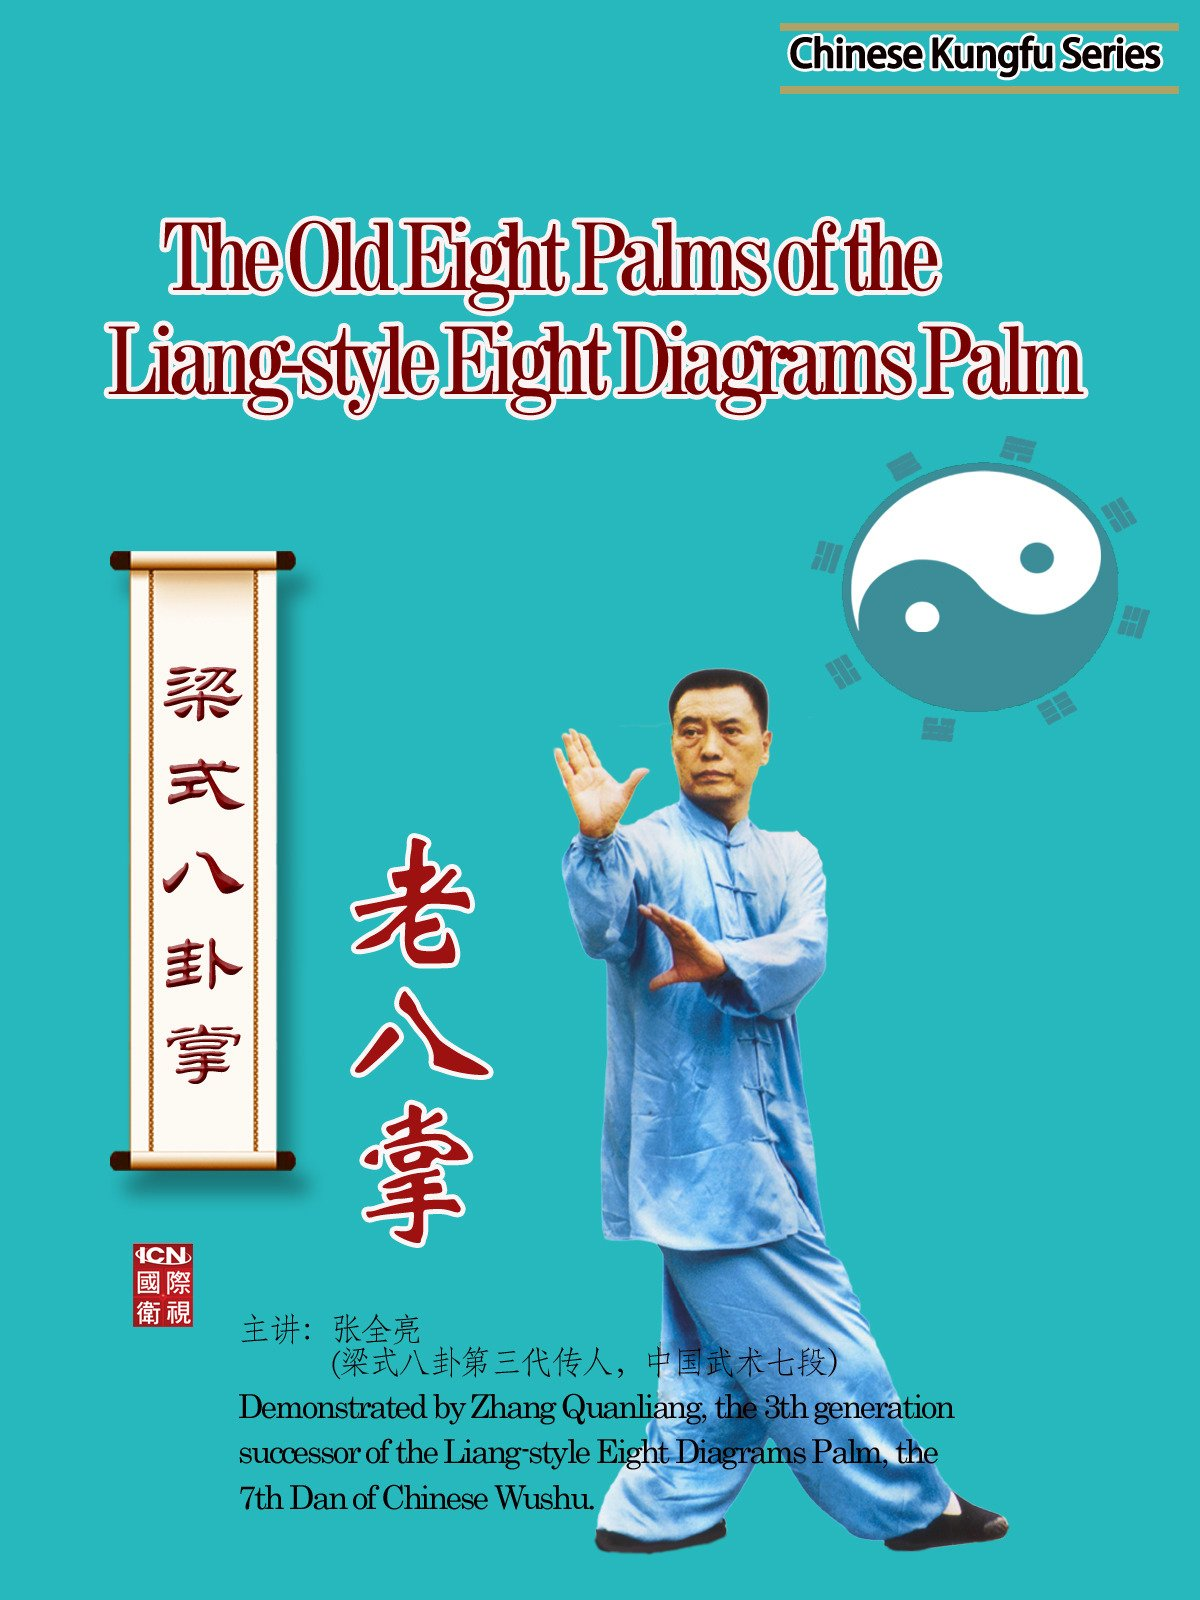 The Old Eight Palms of the Liang-style Eight Diagrams Palm(Demonstrated by Zhang Quanliang)